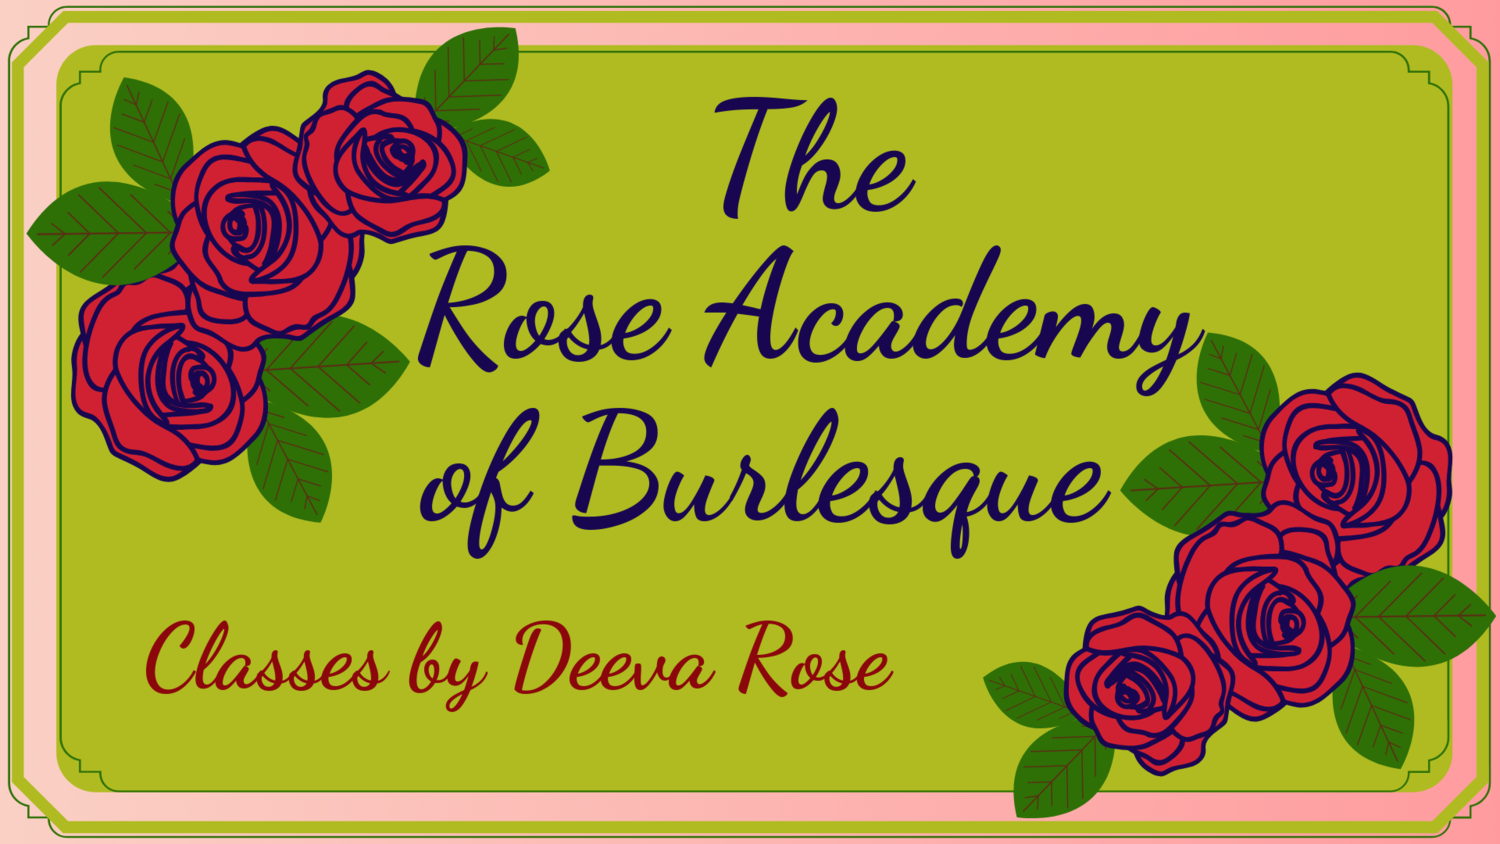 The Rose Academy of Burlesque